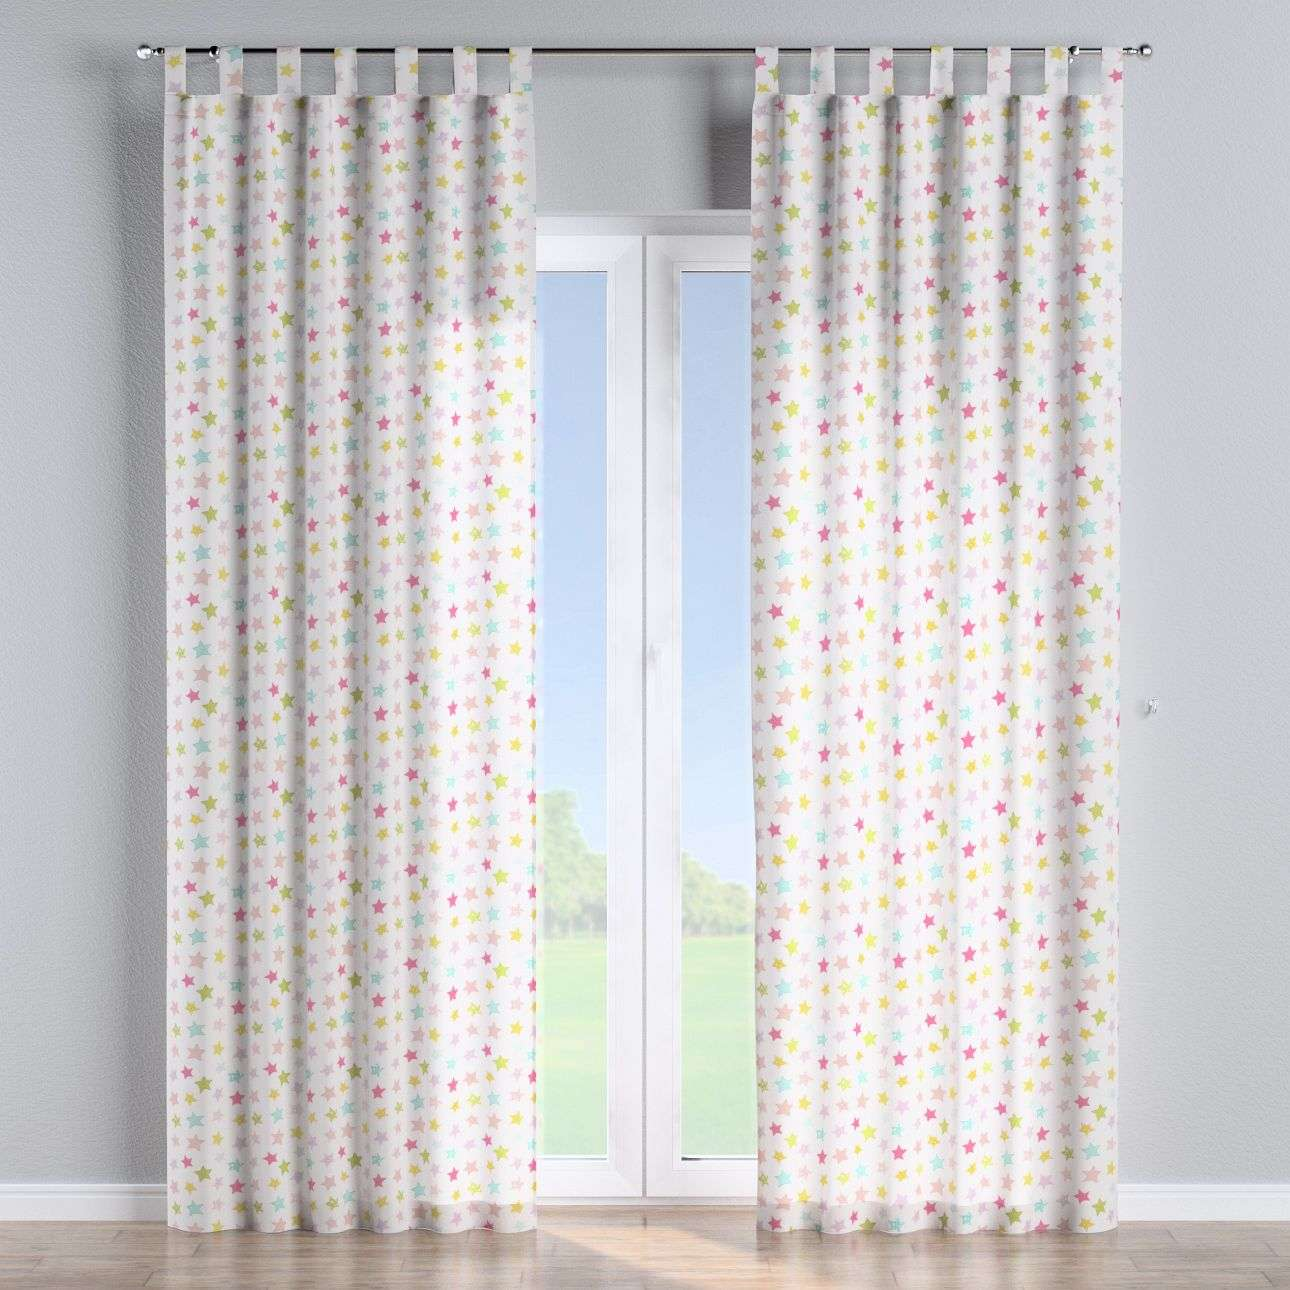 Tab top curtains 130 x 260 cm (51 x 102 inch) in collection Little World, fabric: 141-52